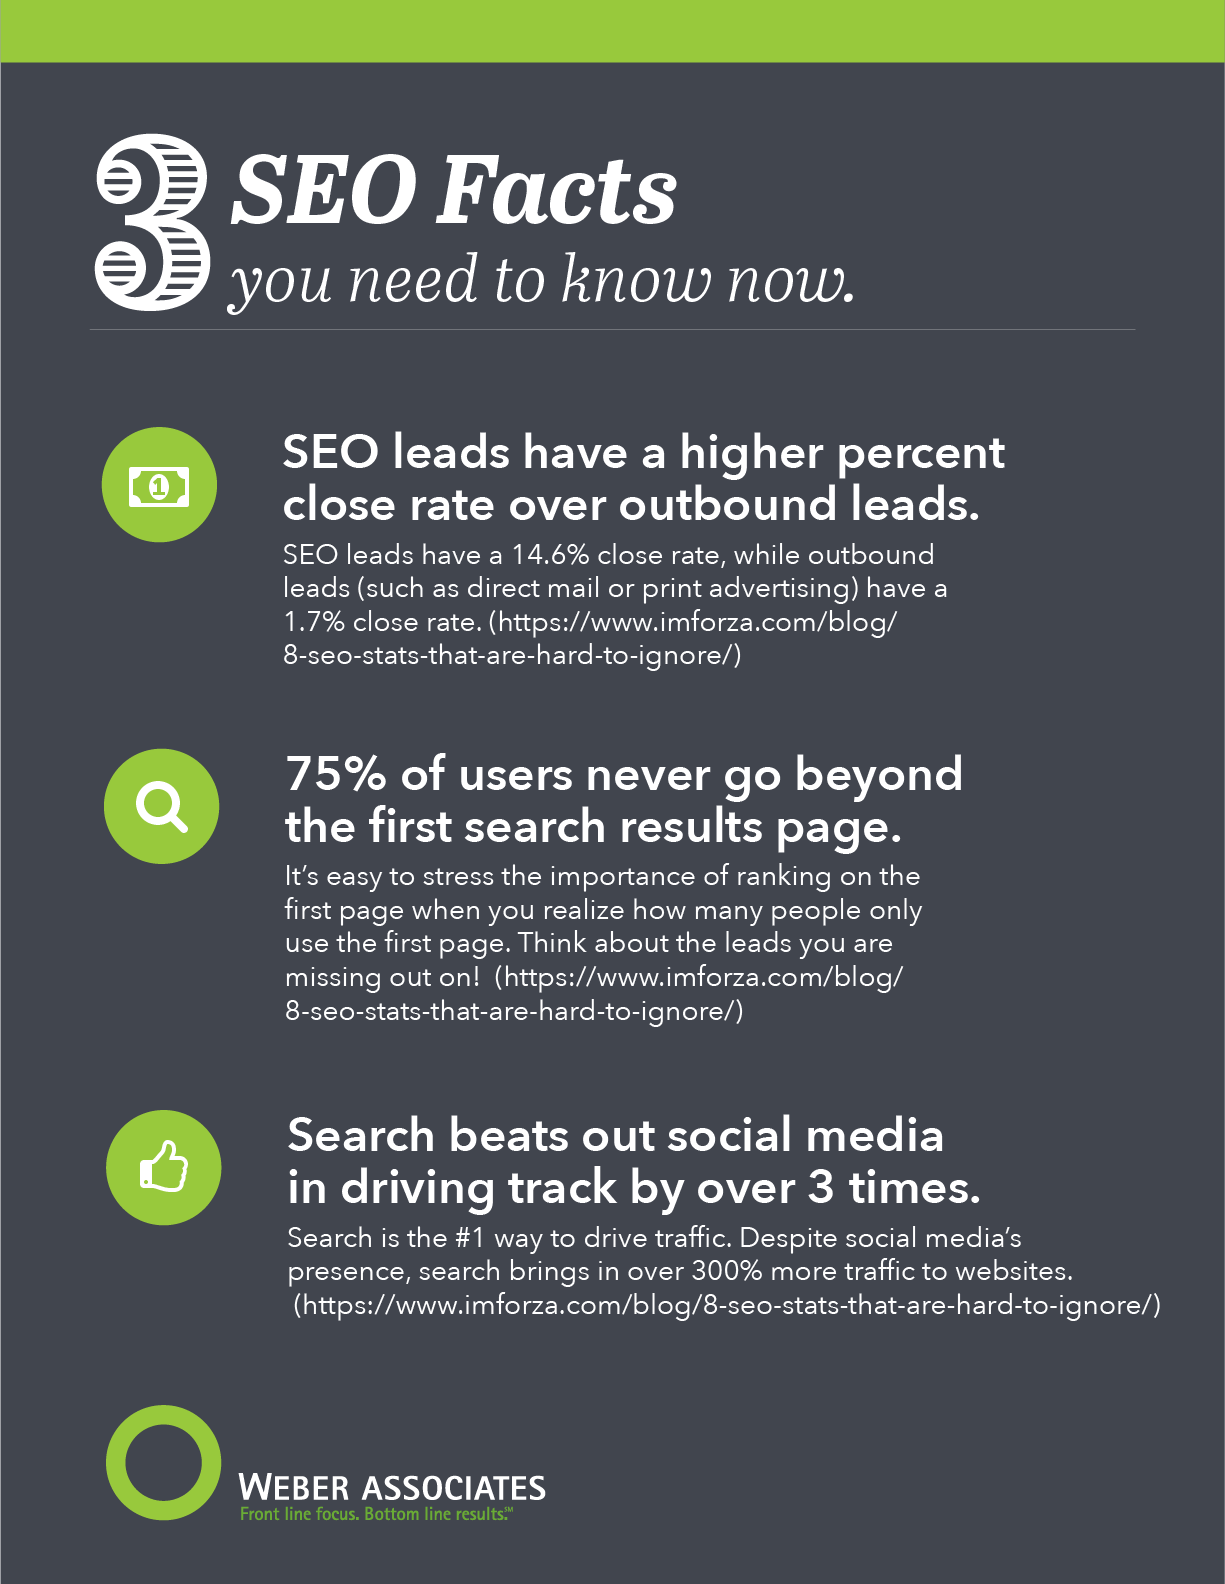 SEO Facts - Information about Search Engine Optimization